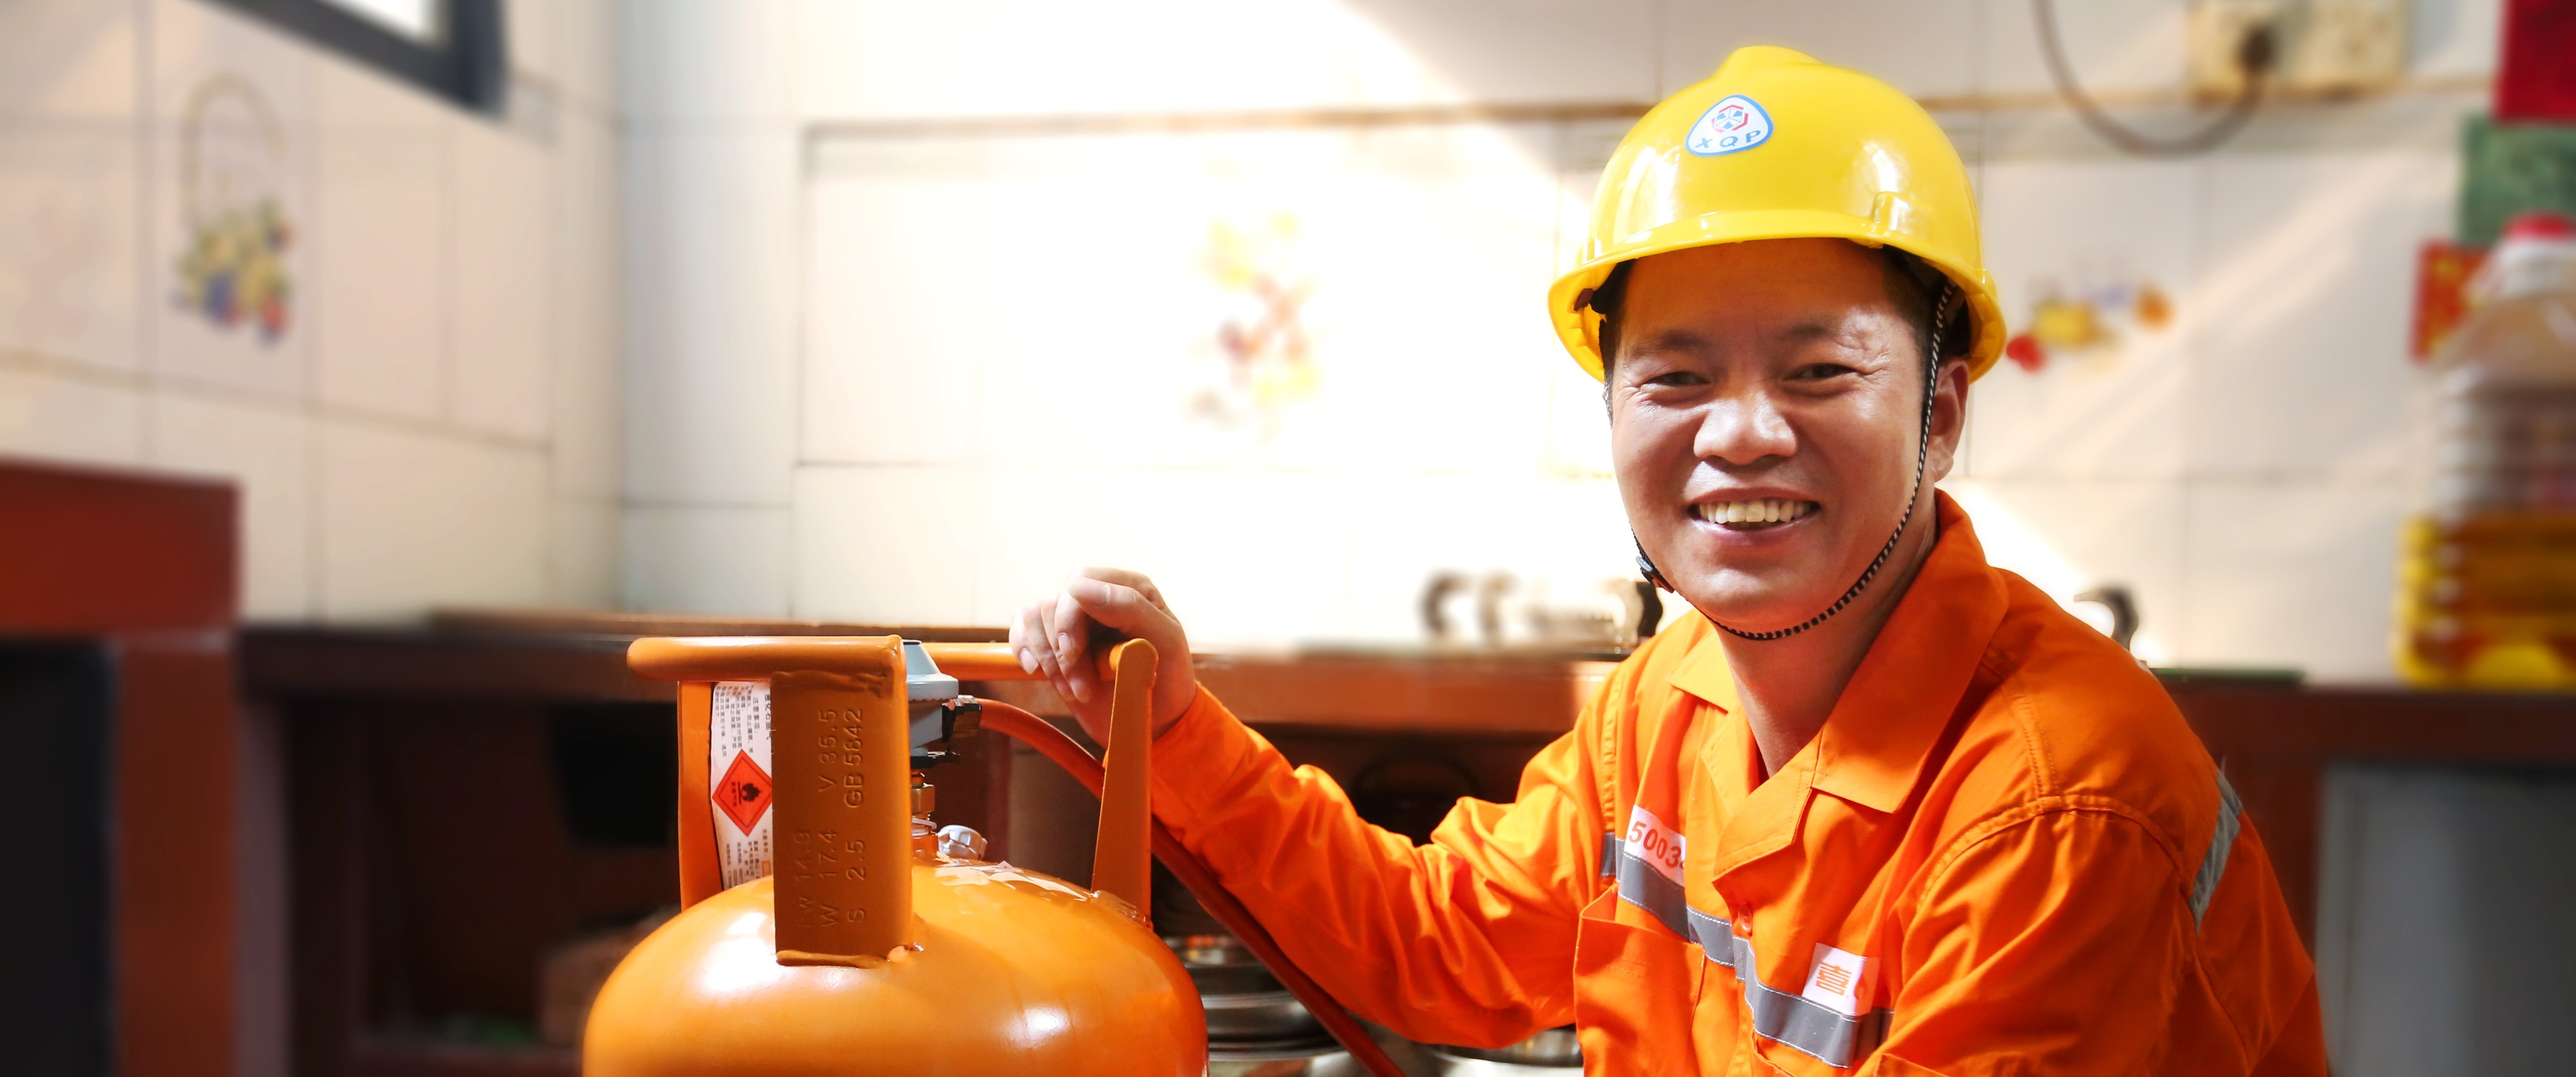 Safety is number one priority in SHV Energy Chinacut